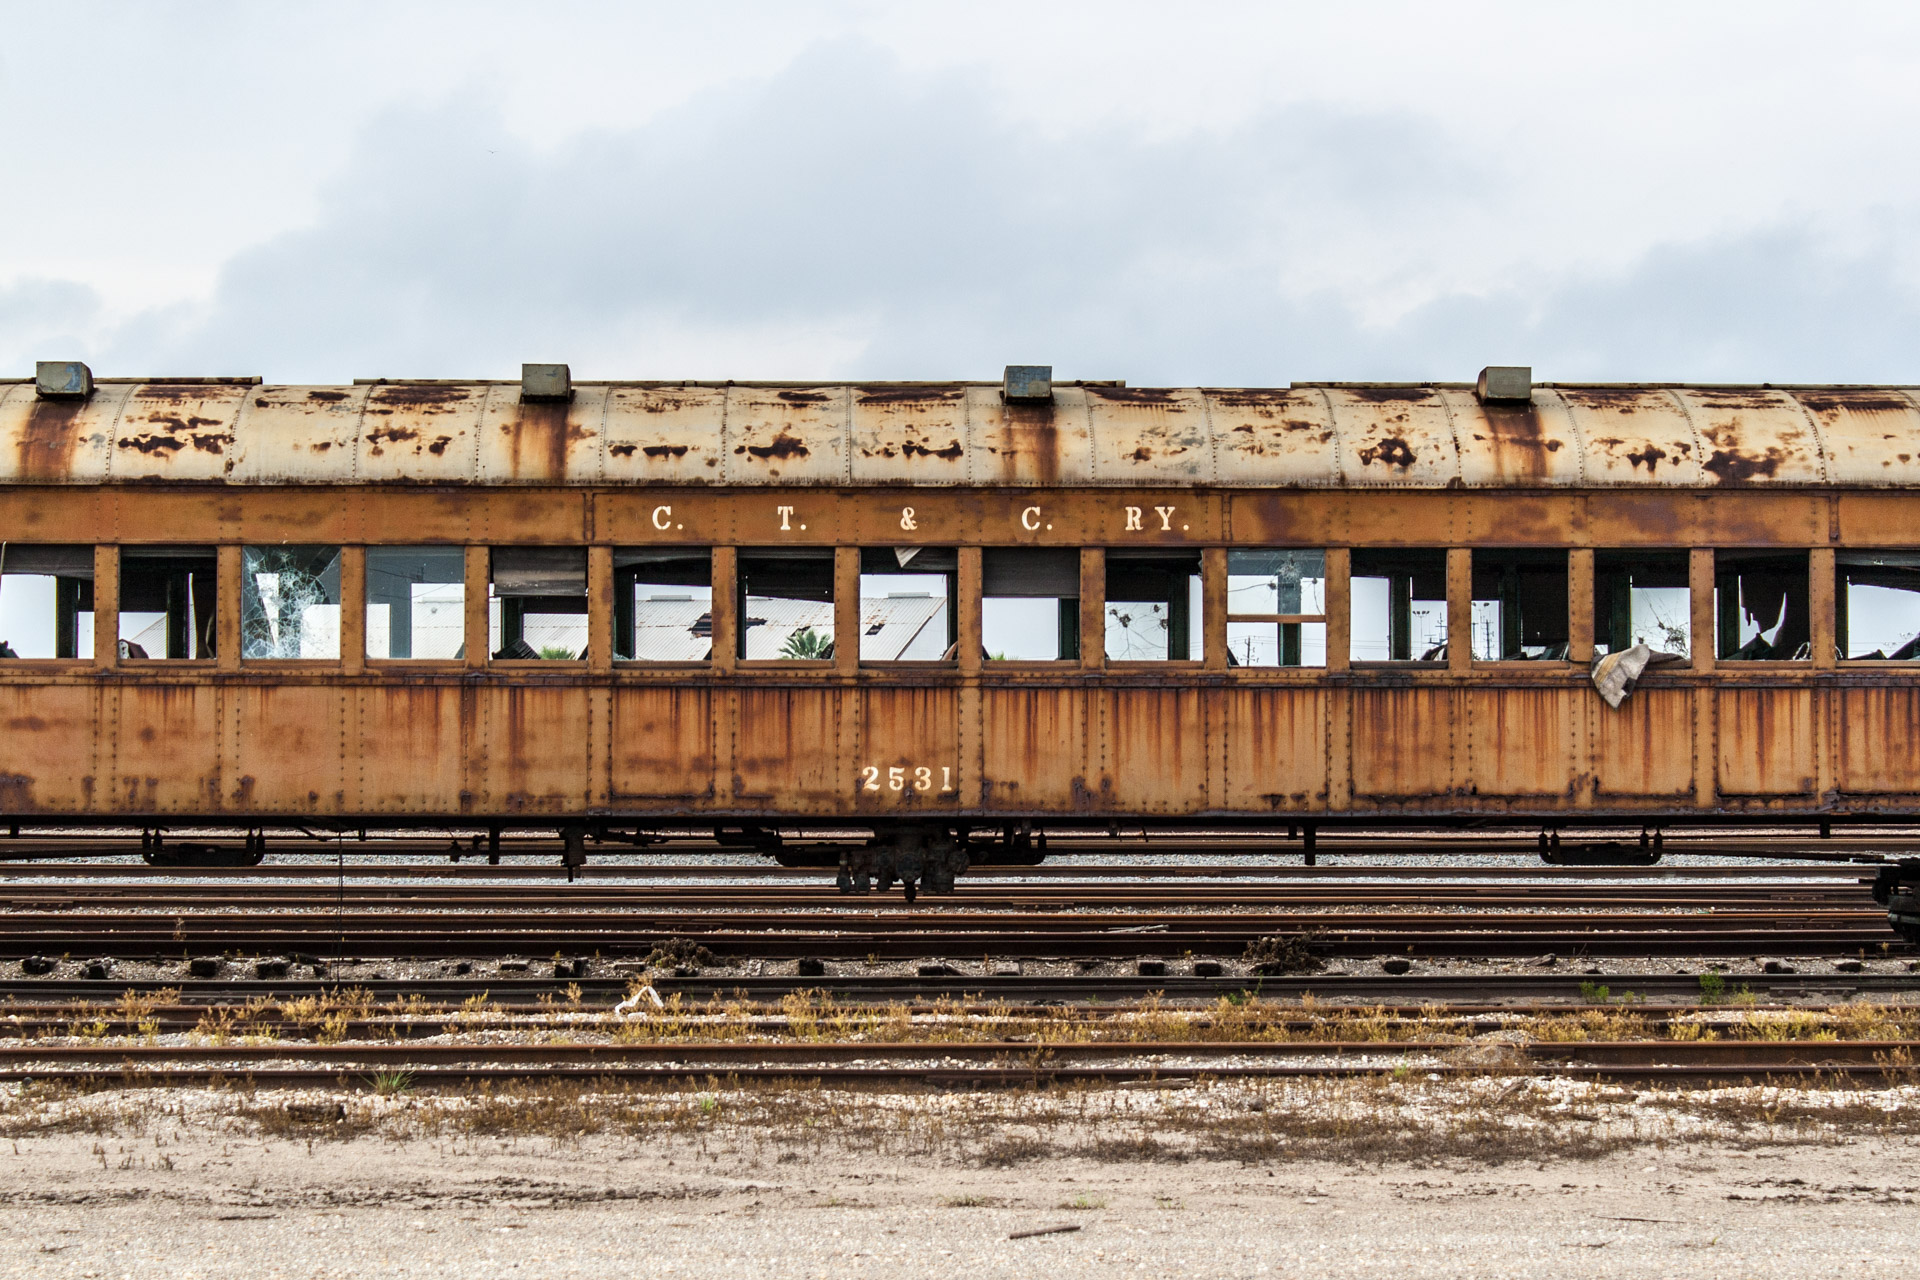 Galveston, Texas - Last Stop Passenger Train Car (front close)